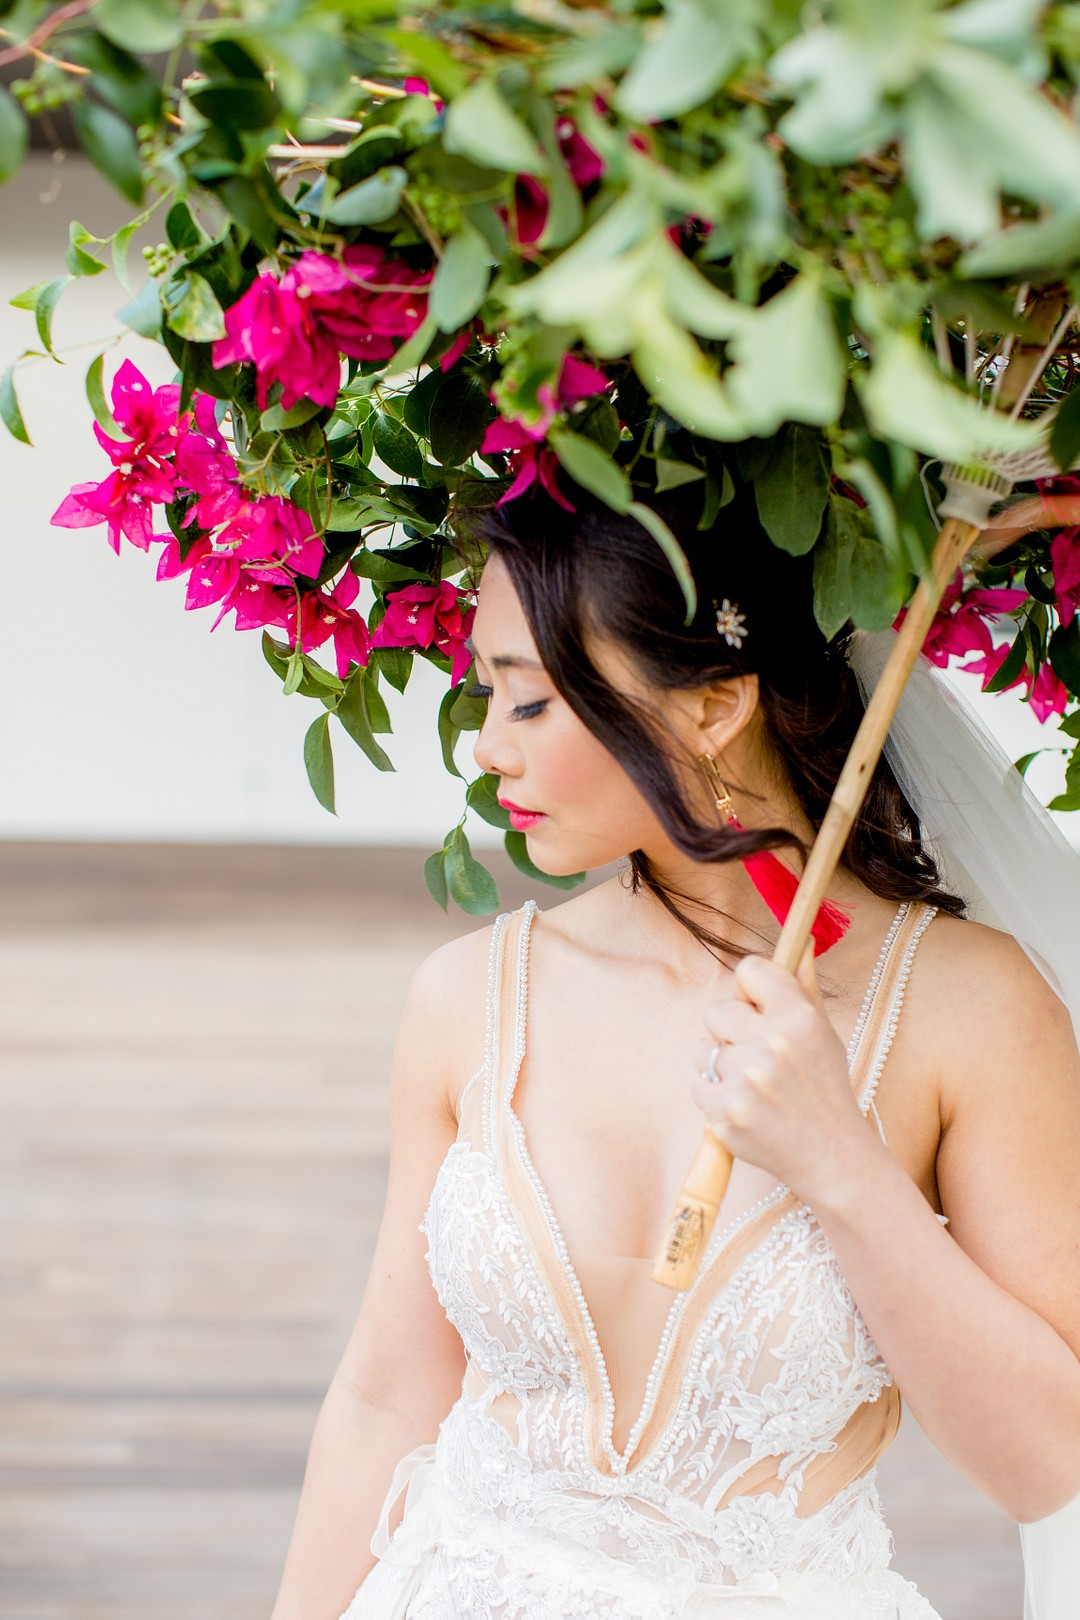 bride holding an umbrella covered in flowers